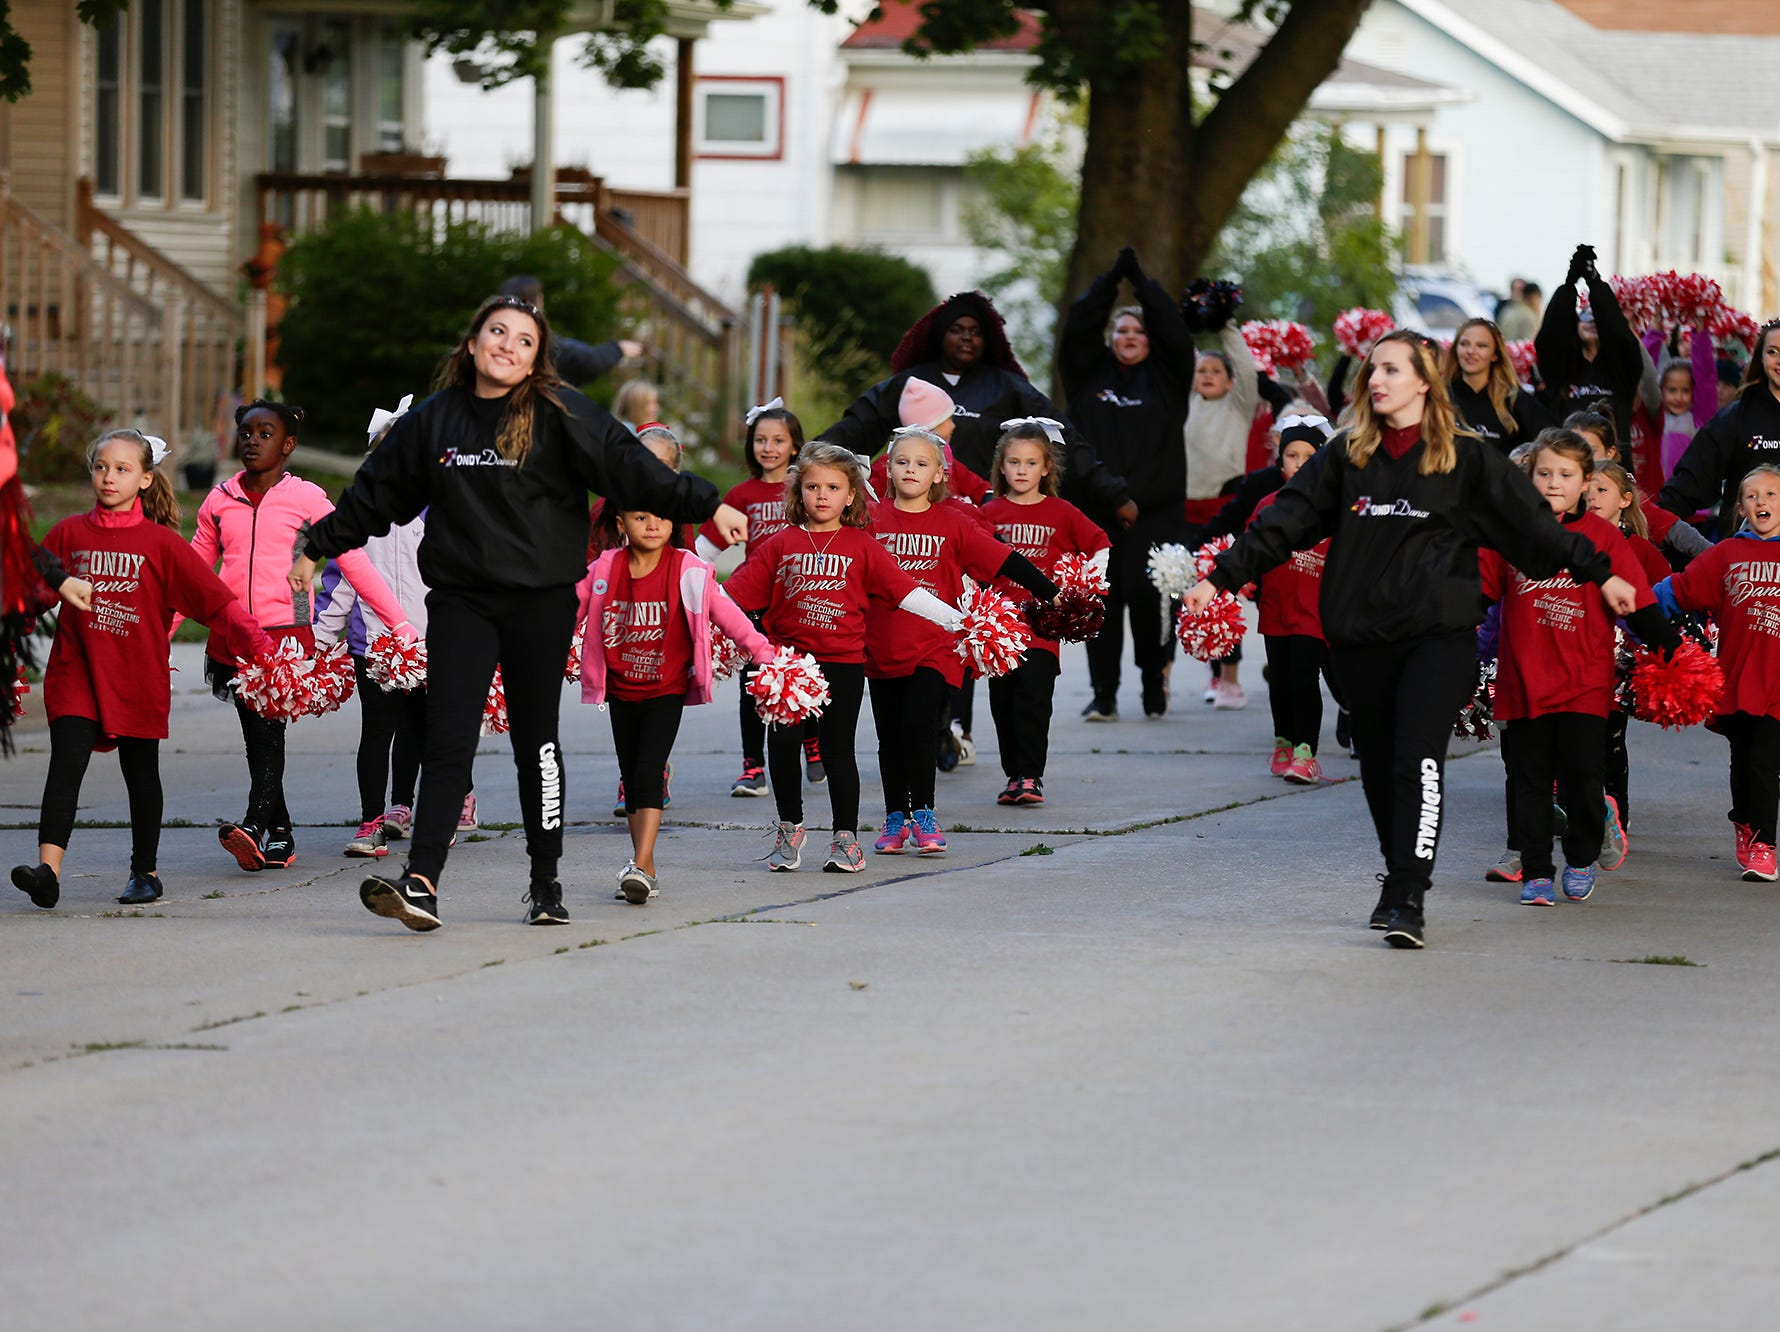 The Fondy Dance team marched in the Fond du Lac High School football homecoming parade Friday, Sept. 28, 2018, which went down portions of Martin Avenue and Ninth Street in Fond du Lac, Wisconsin.